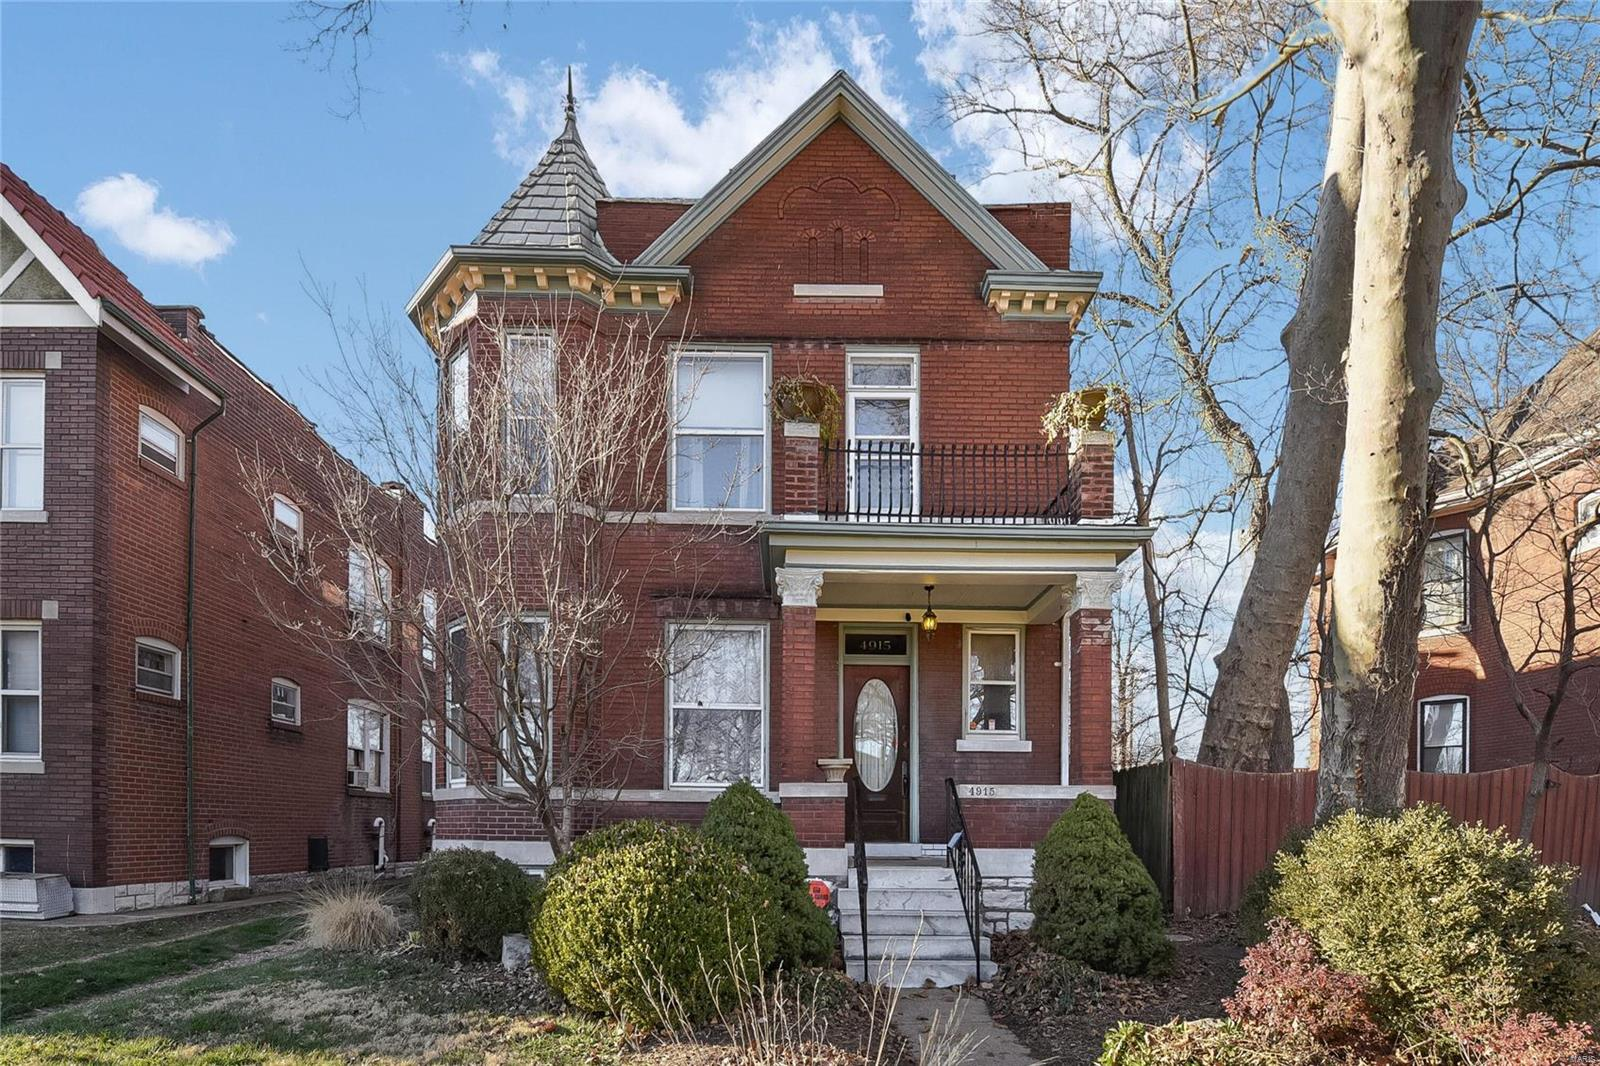 4915 S Broadway Property Photo - St Louis, MO real estate listing